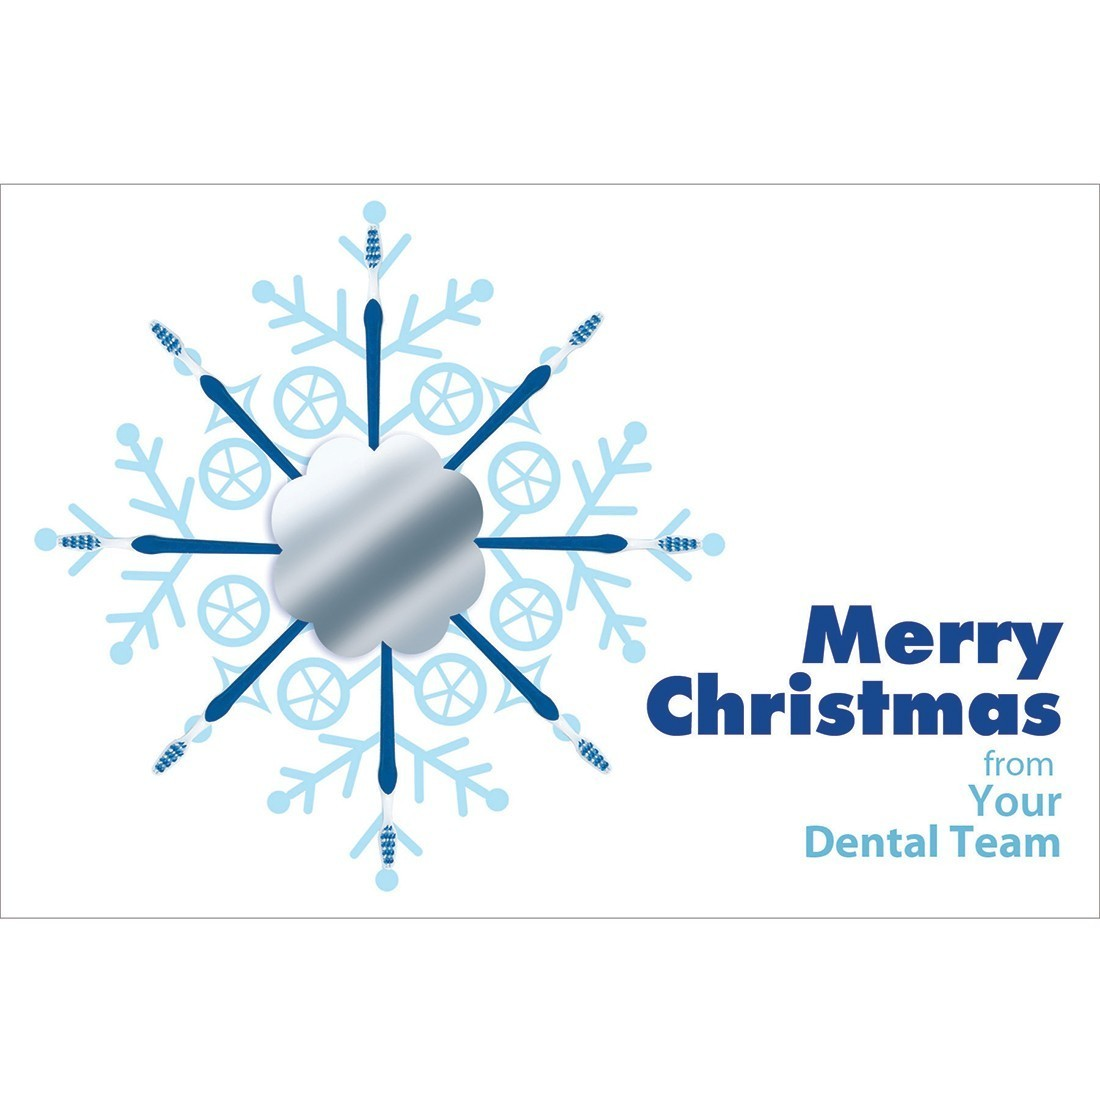 Merry Christmas Dental Team Greeting Cards [image]